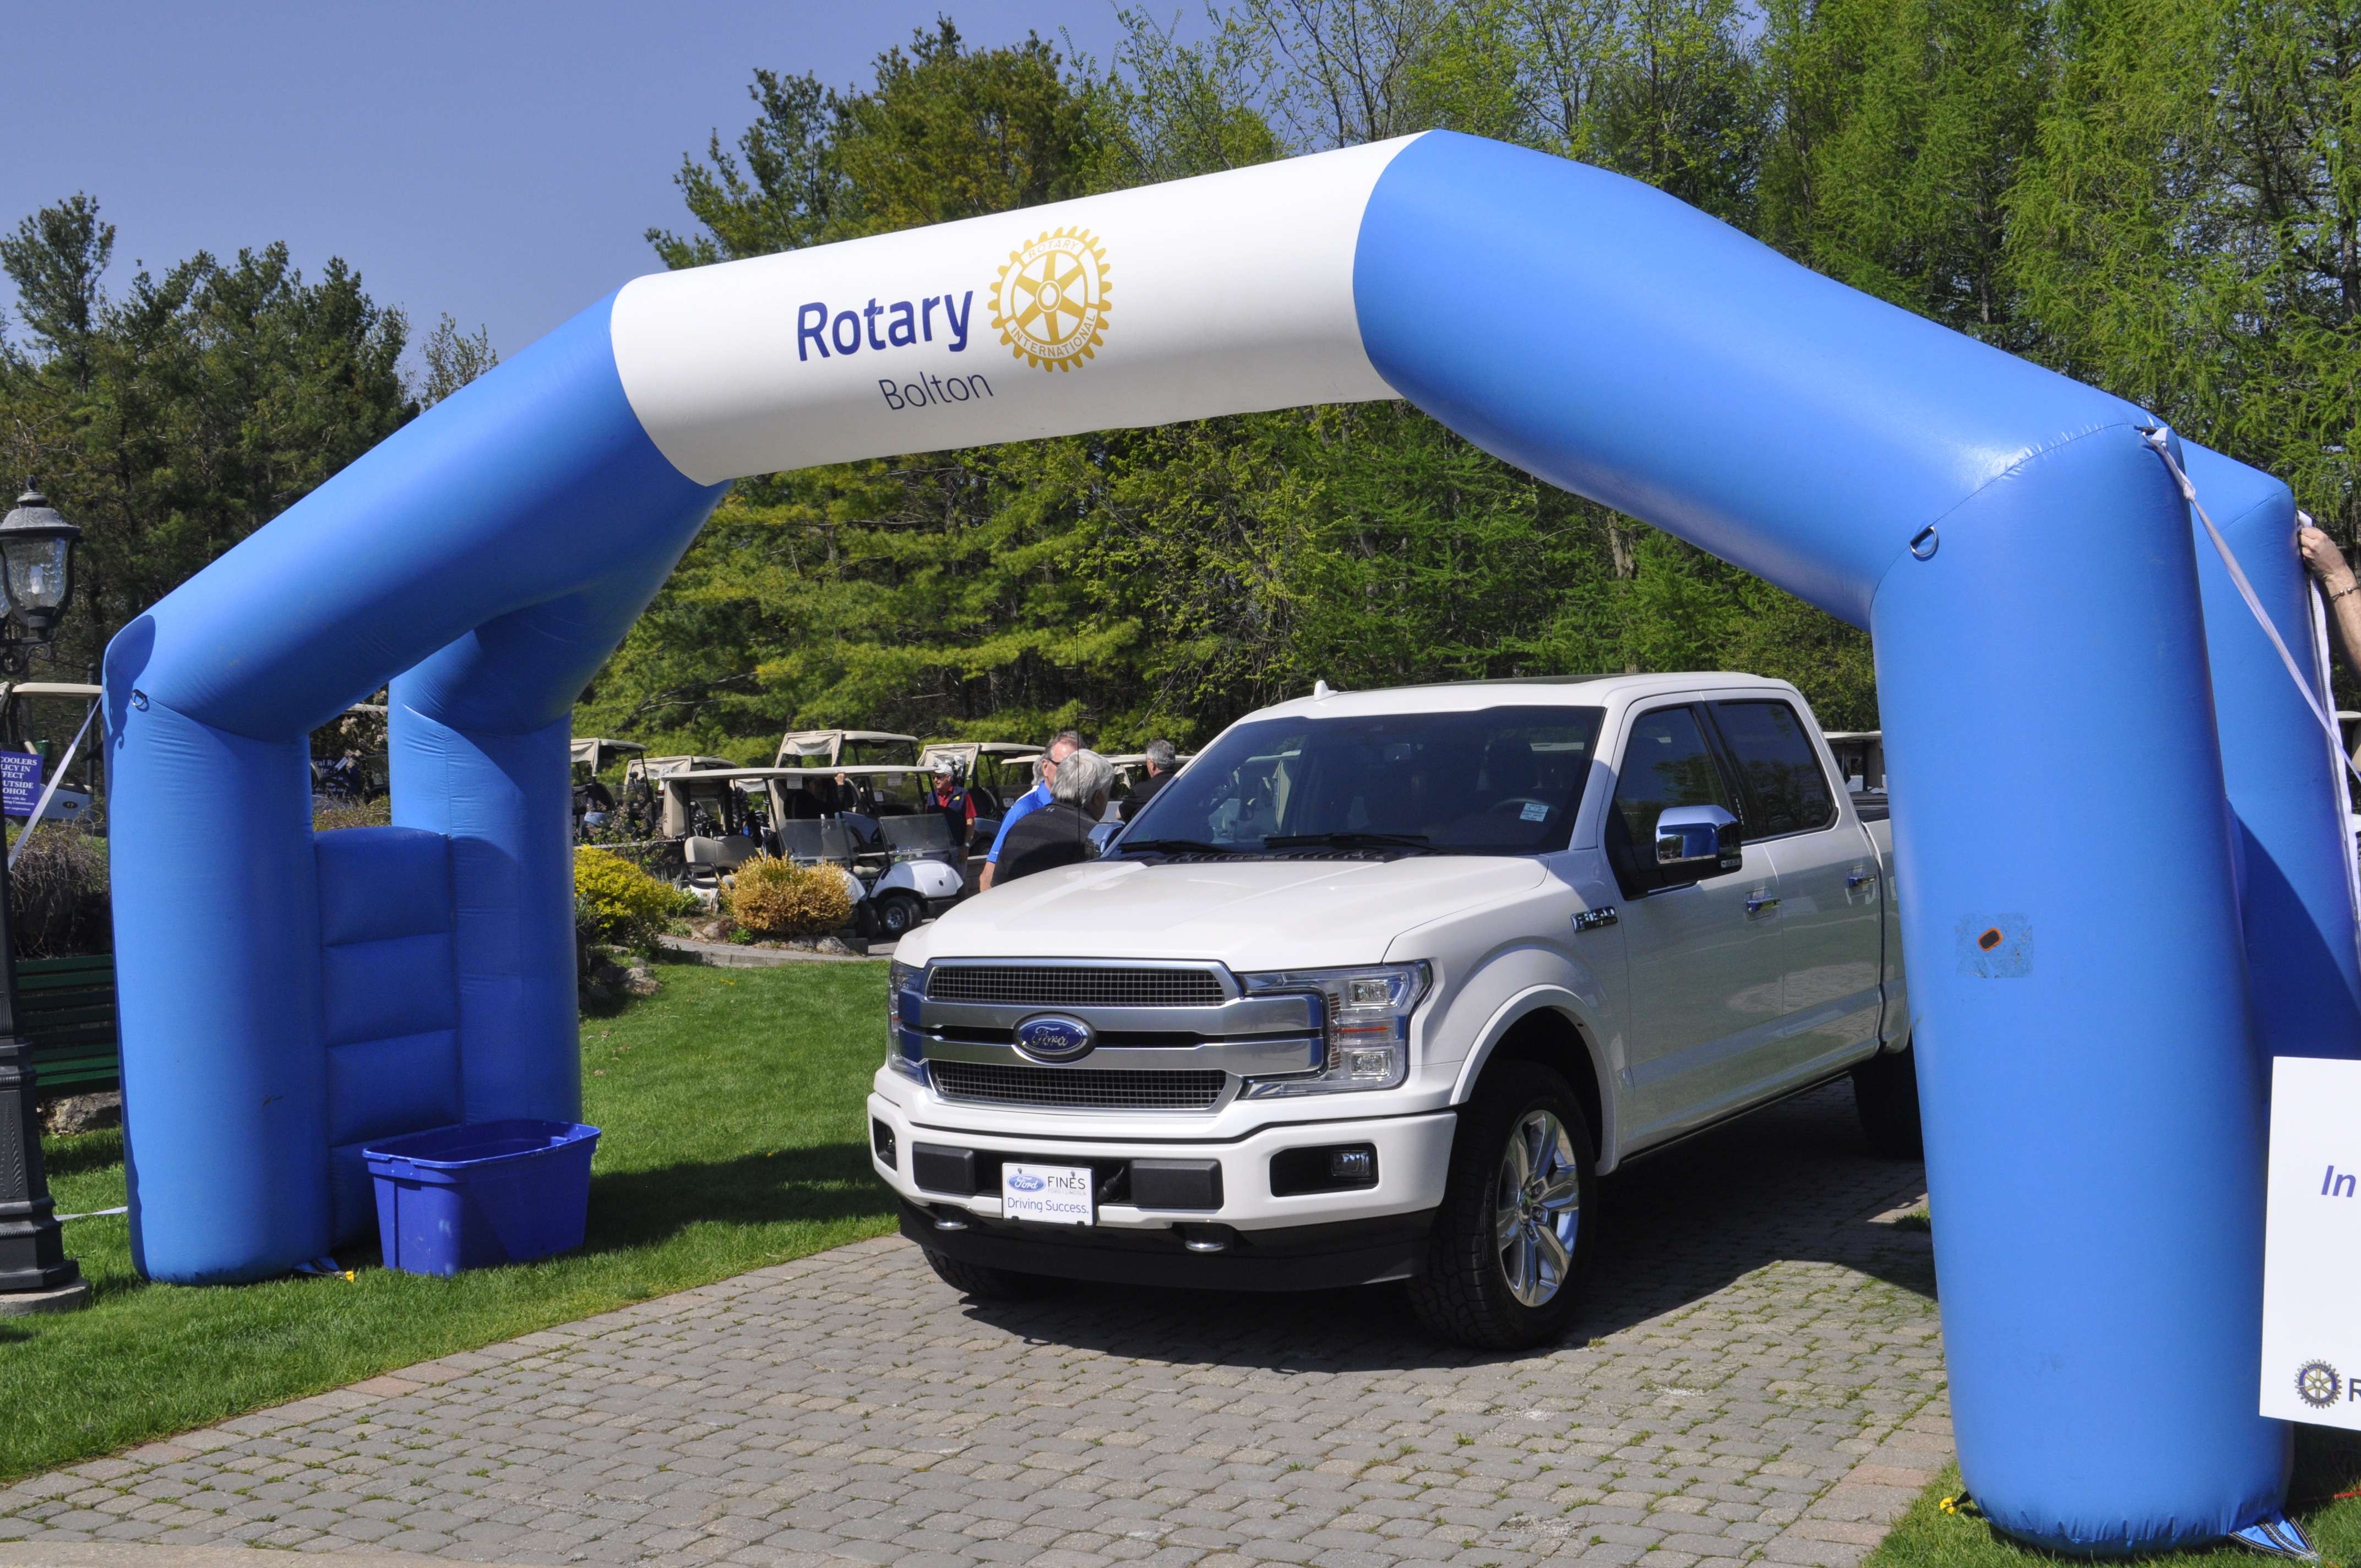 Bolton Rotary Golf Fall Tournament gallery image #27